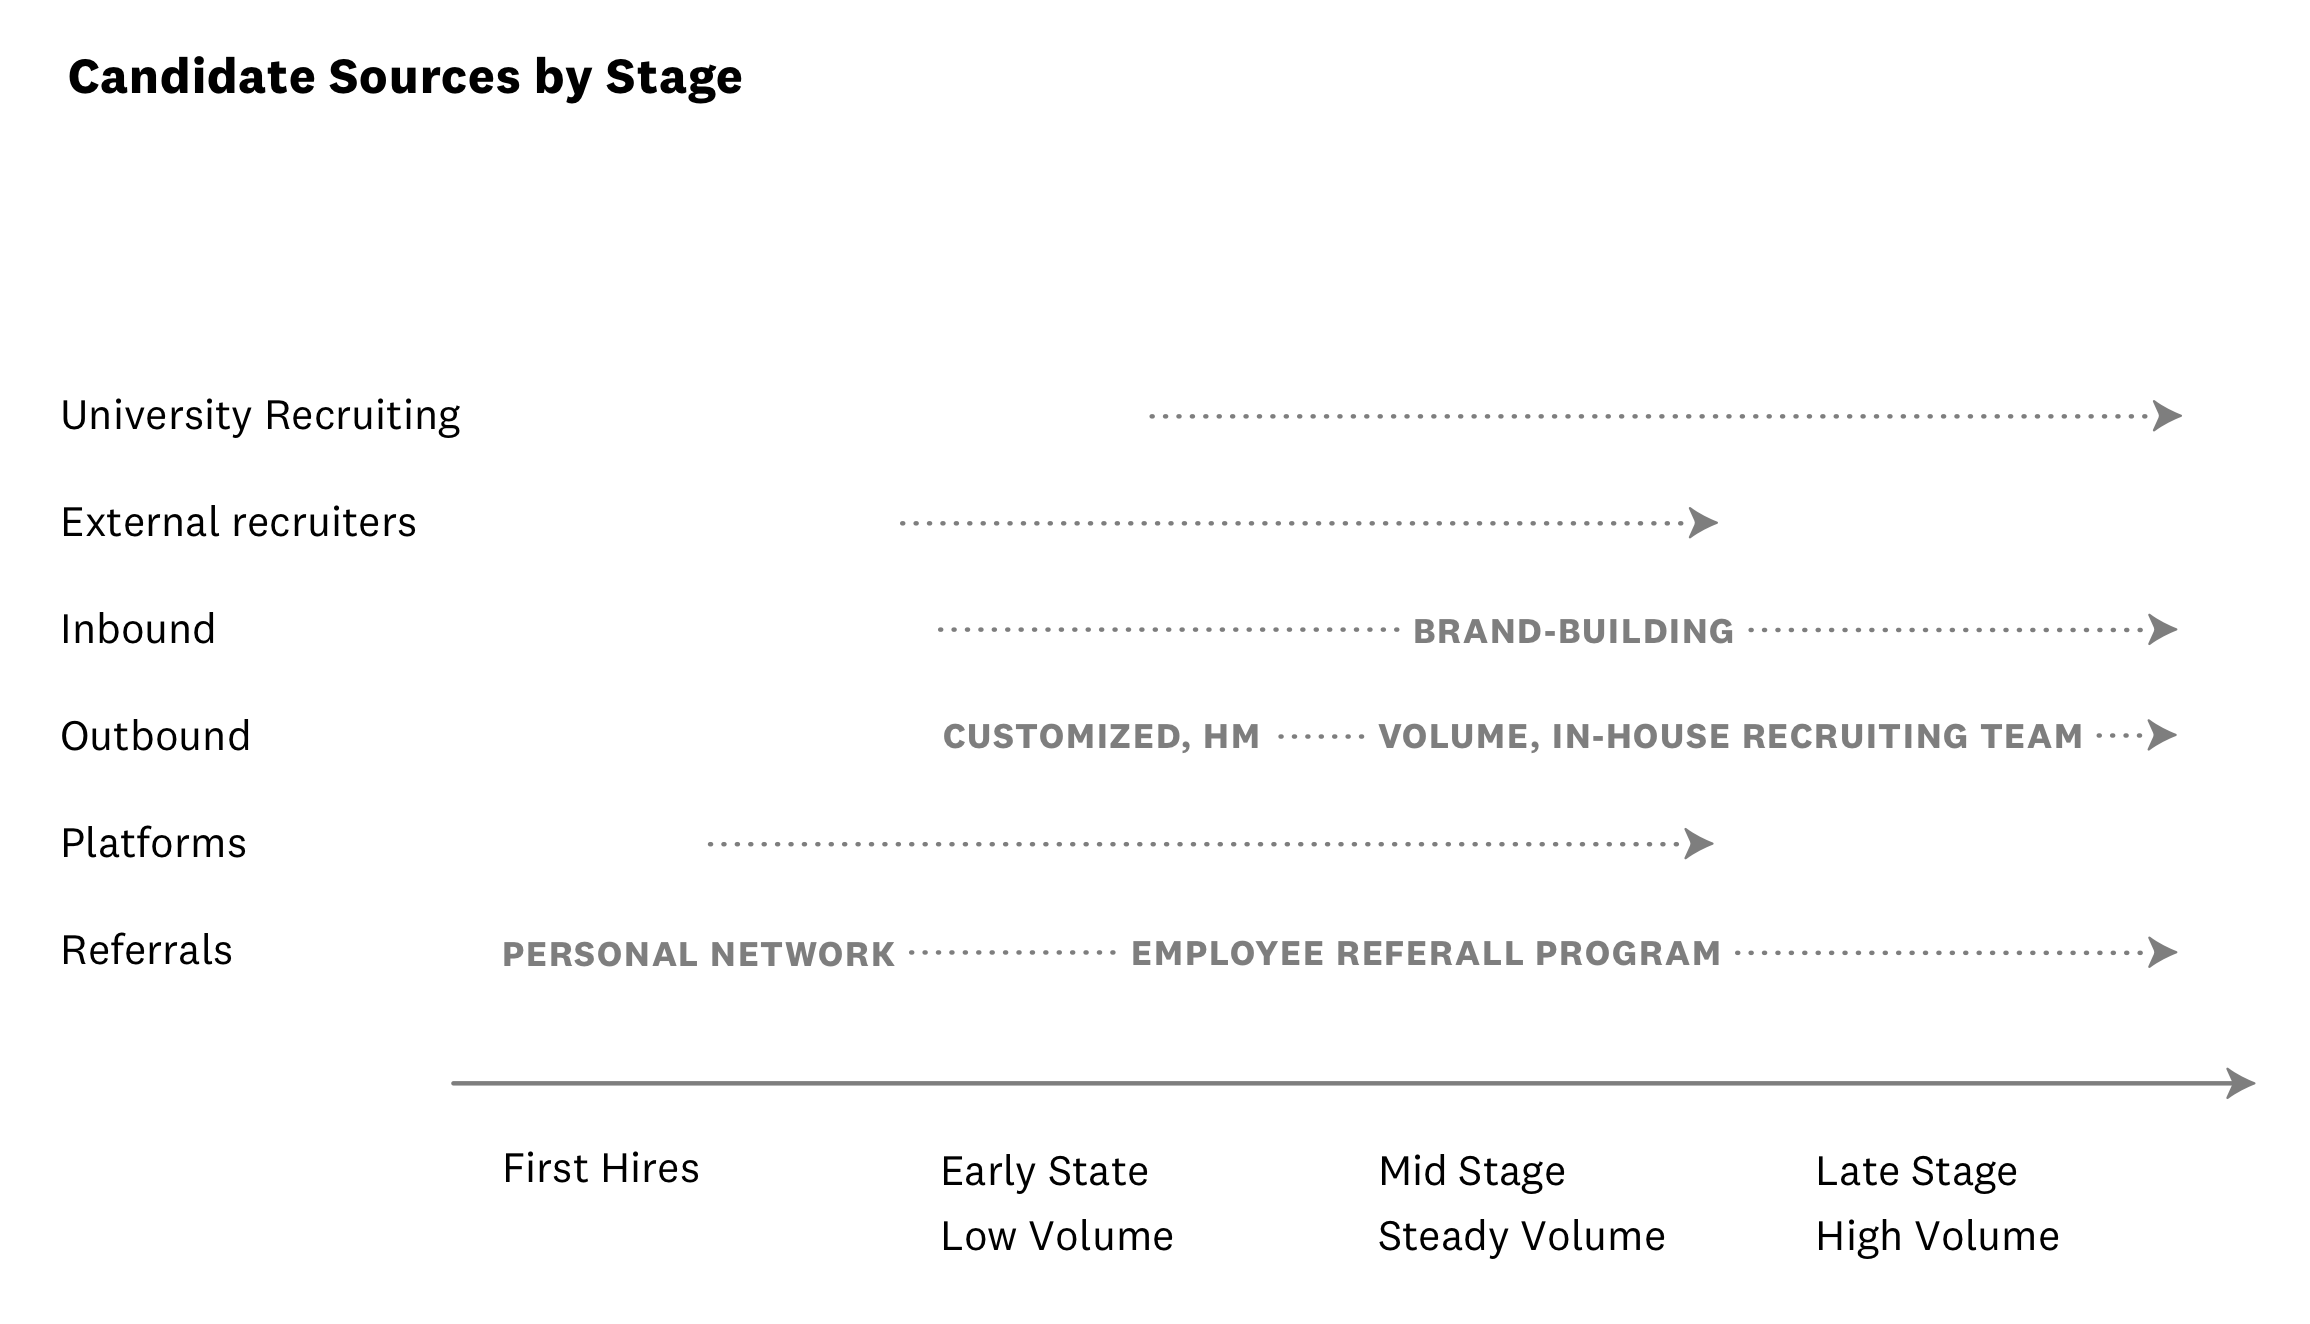 Hiring sources by company stage and volume